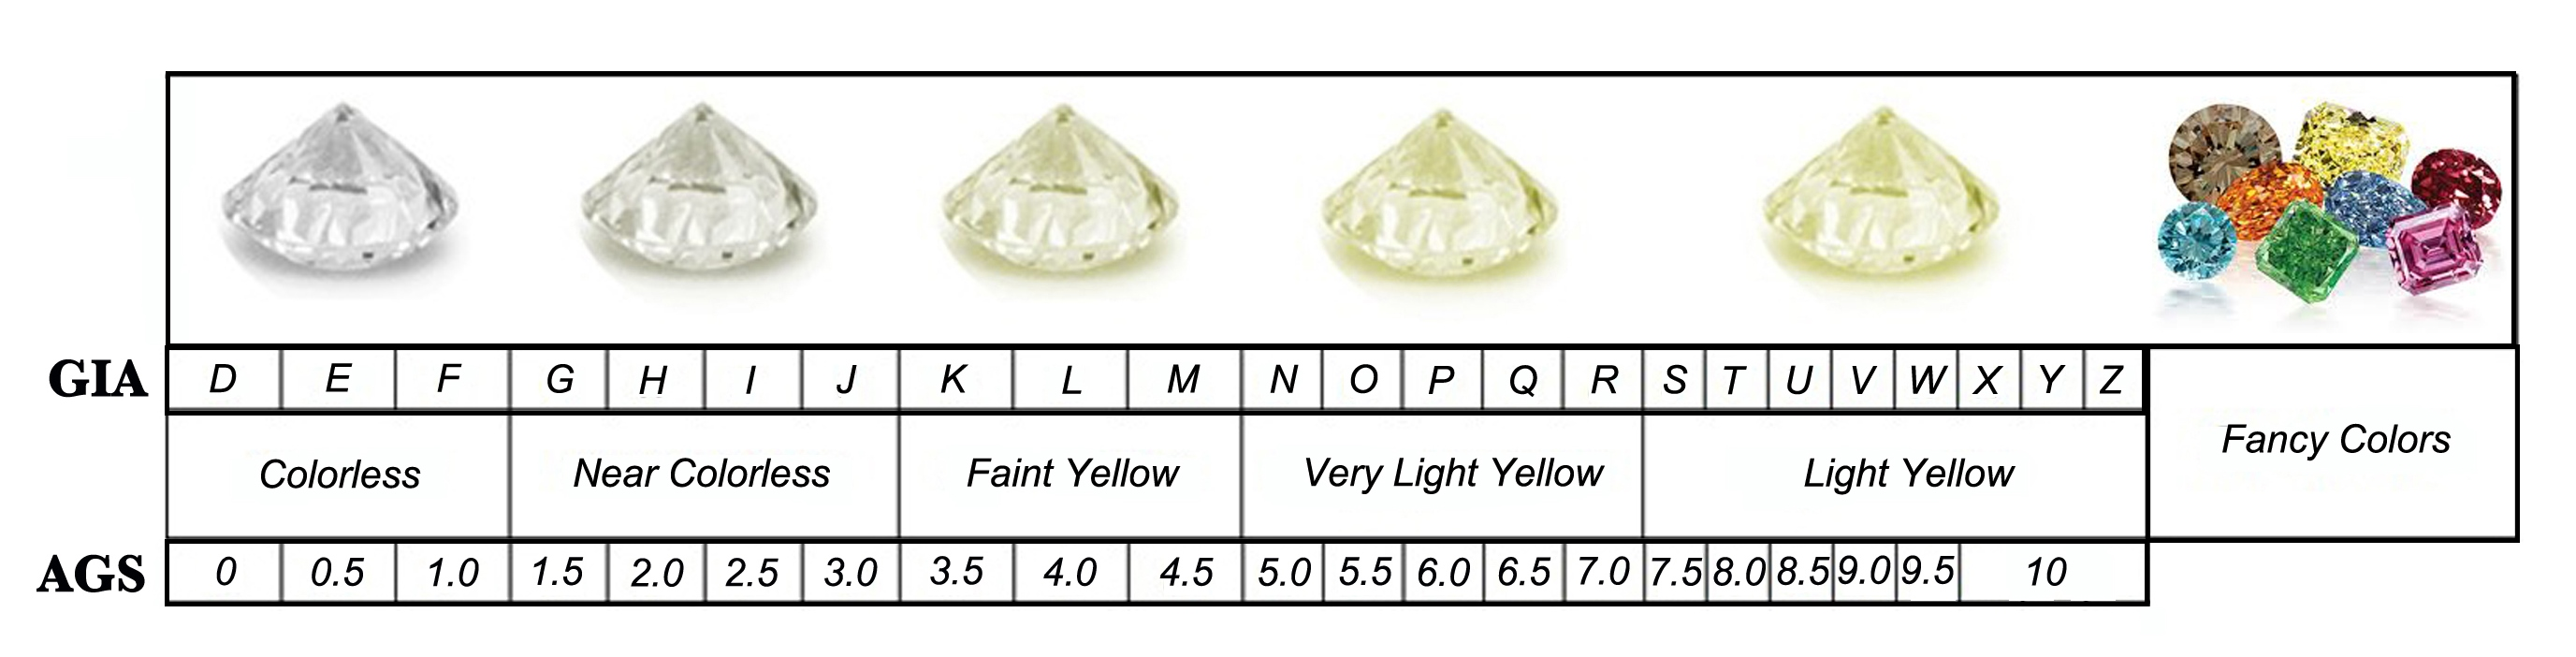 black diamond ultraviolet revisited over fluorescent base light grading of pricescope blue color issues diamonds illumination flourescent in long wave journal data